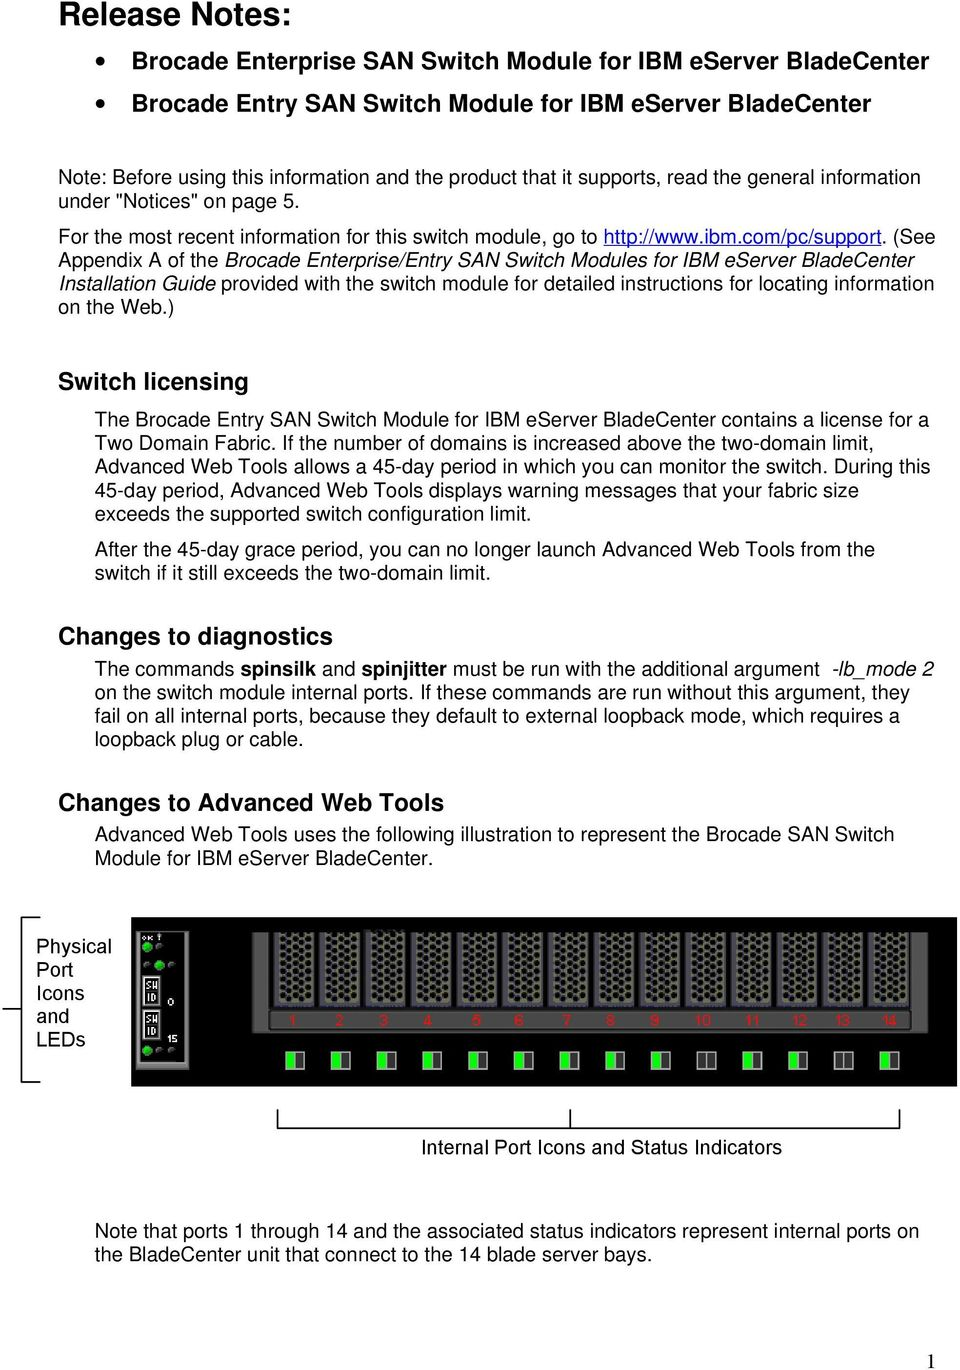 (See Appendix A of the Brocade Enterprise/Entry SAN Switch Modules for IBM eserver BladeCenter Installation Guide provided with the switch module for detailed instructions for locating information on